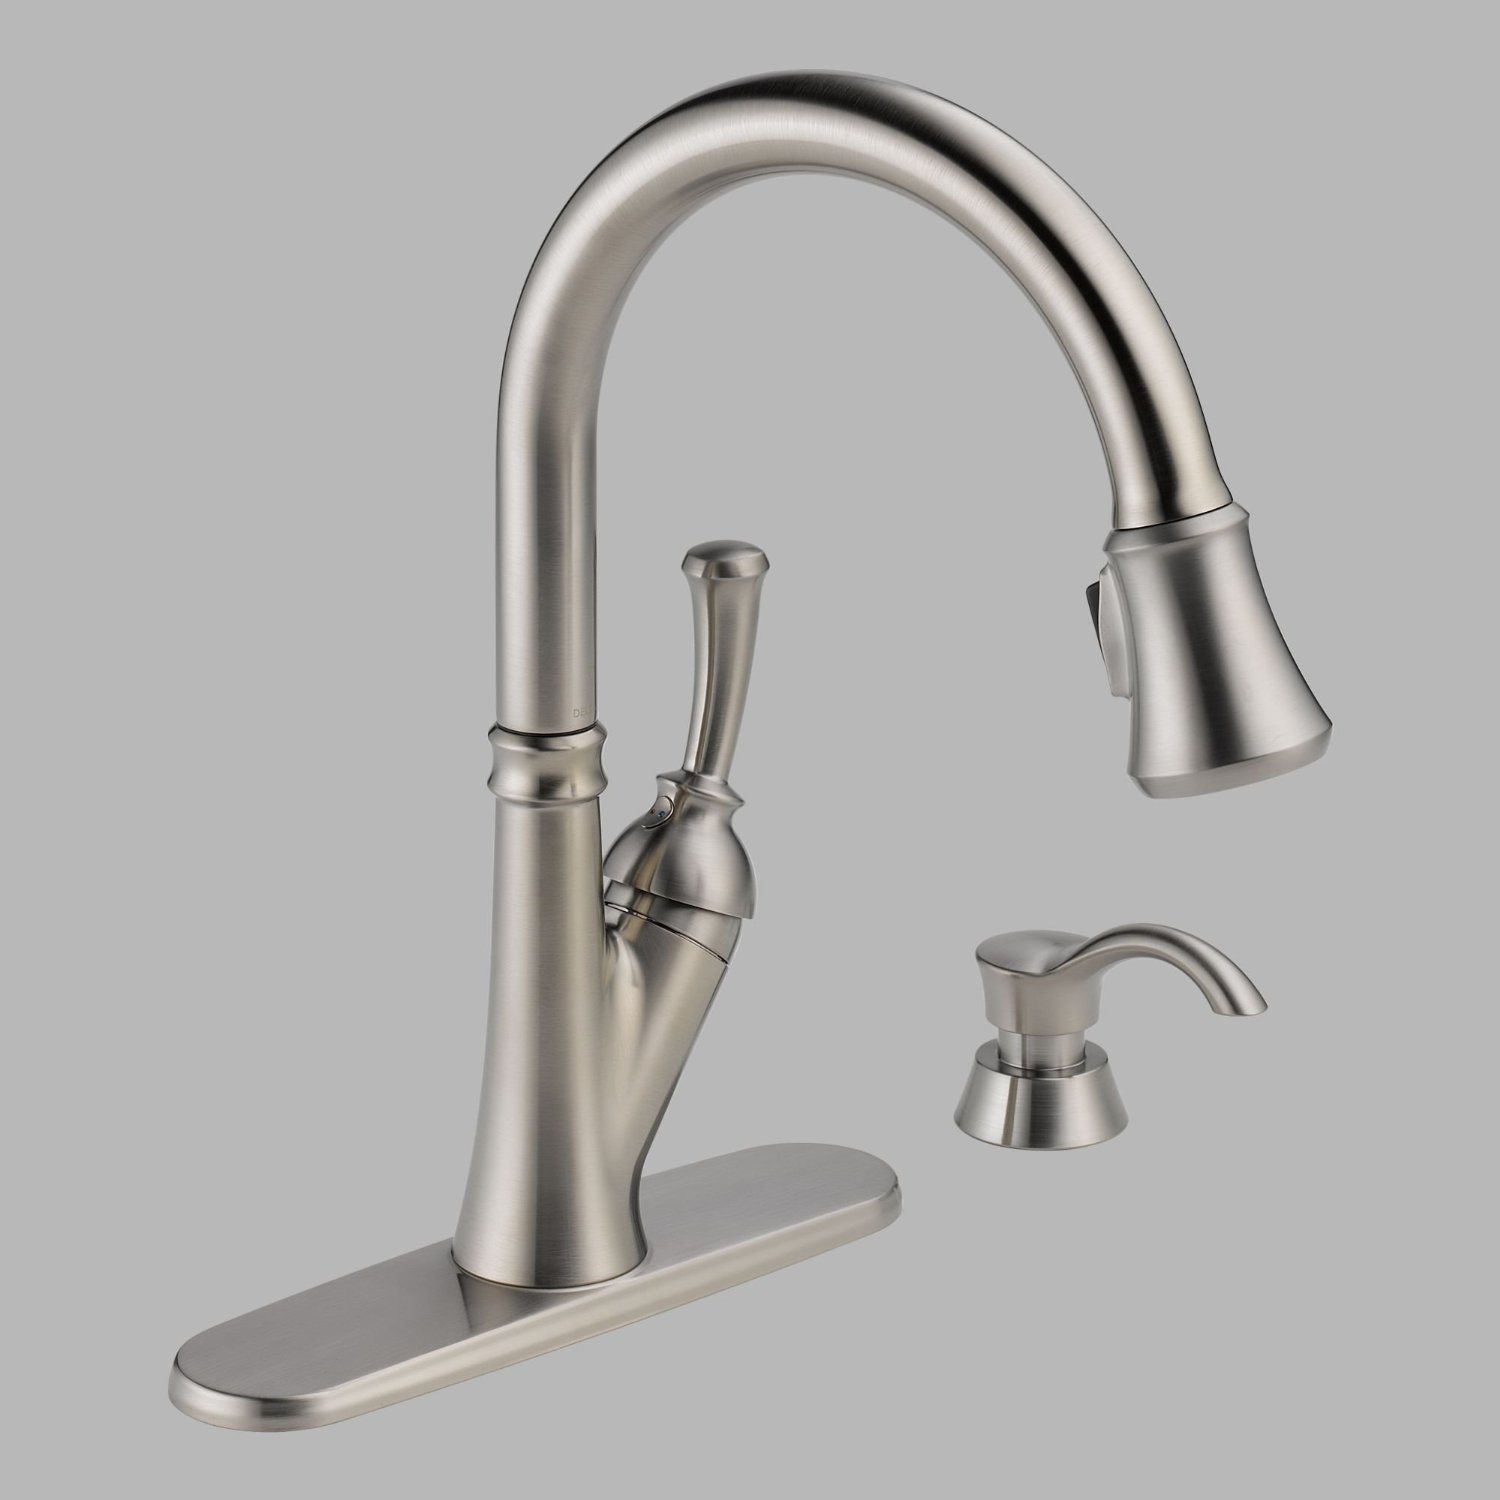 Ideas, delta farm sink faucets delta farm sink faucets dining kitchen make your kitchen looks elegant with lavish 1500 x 1500  .